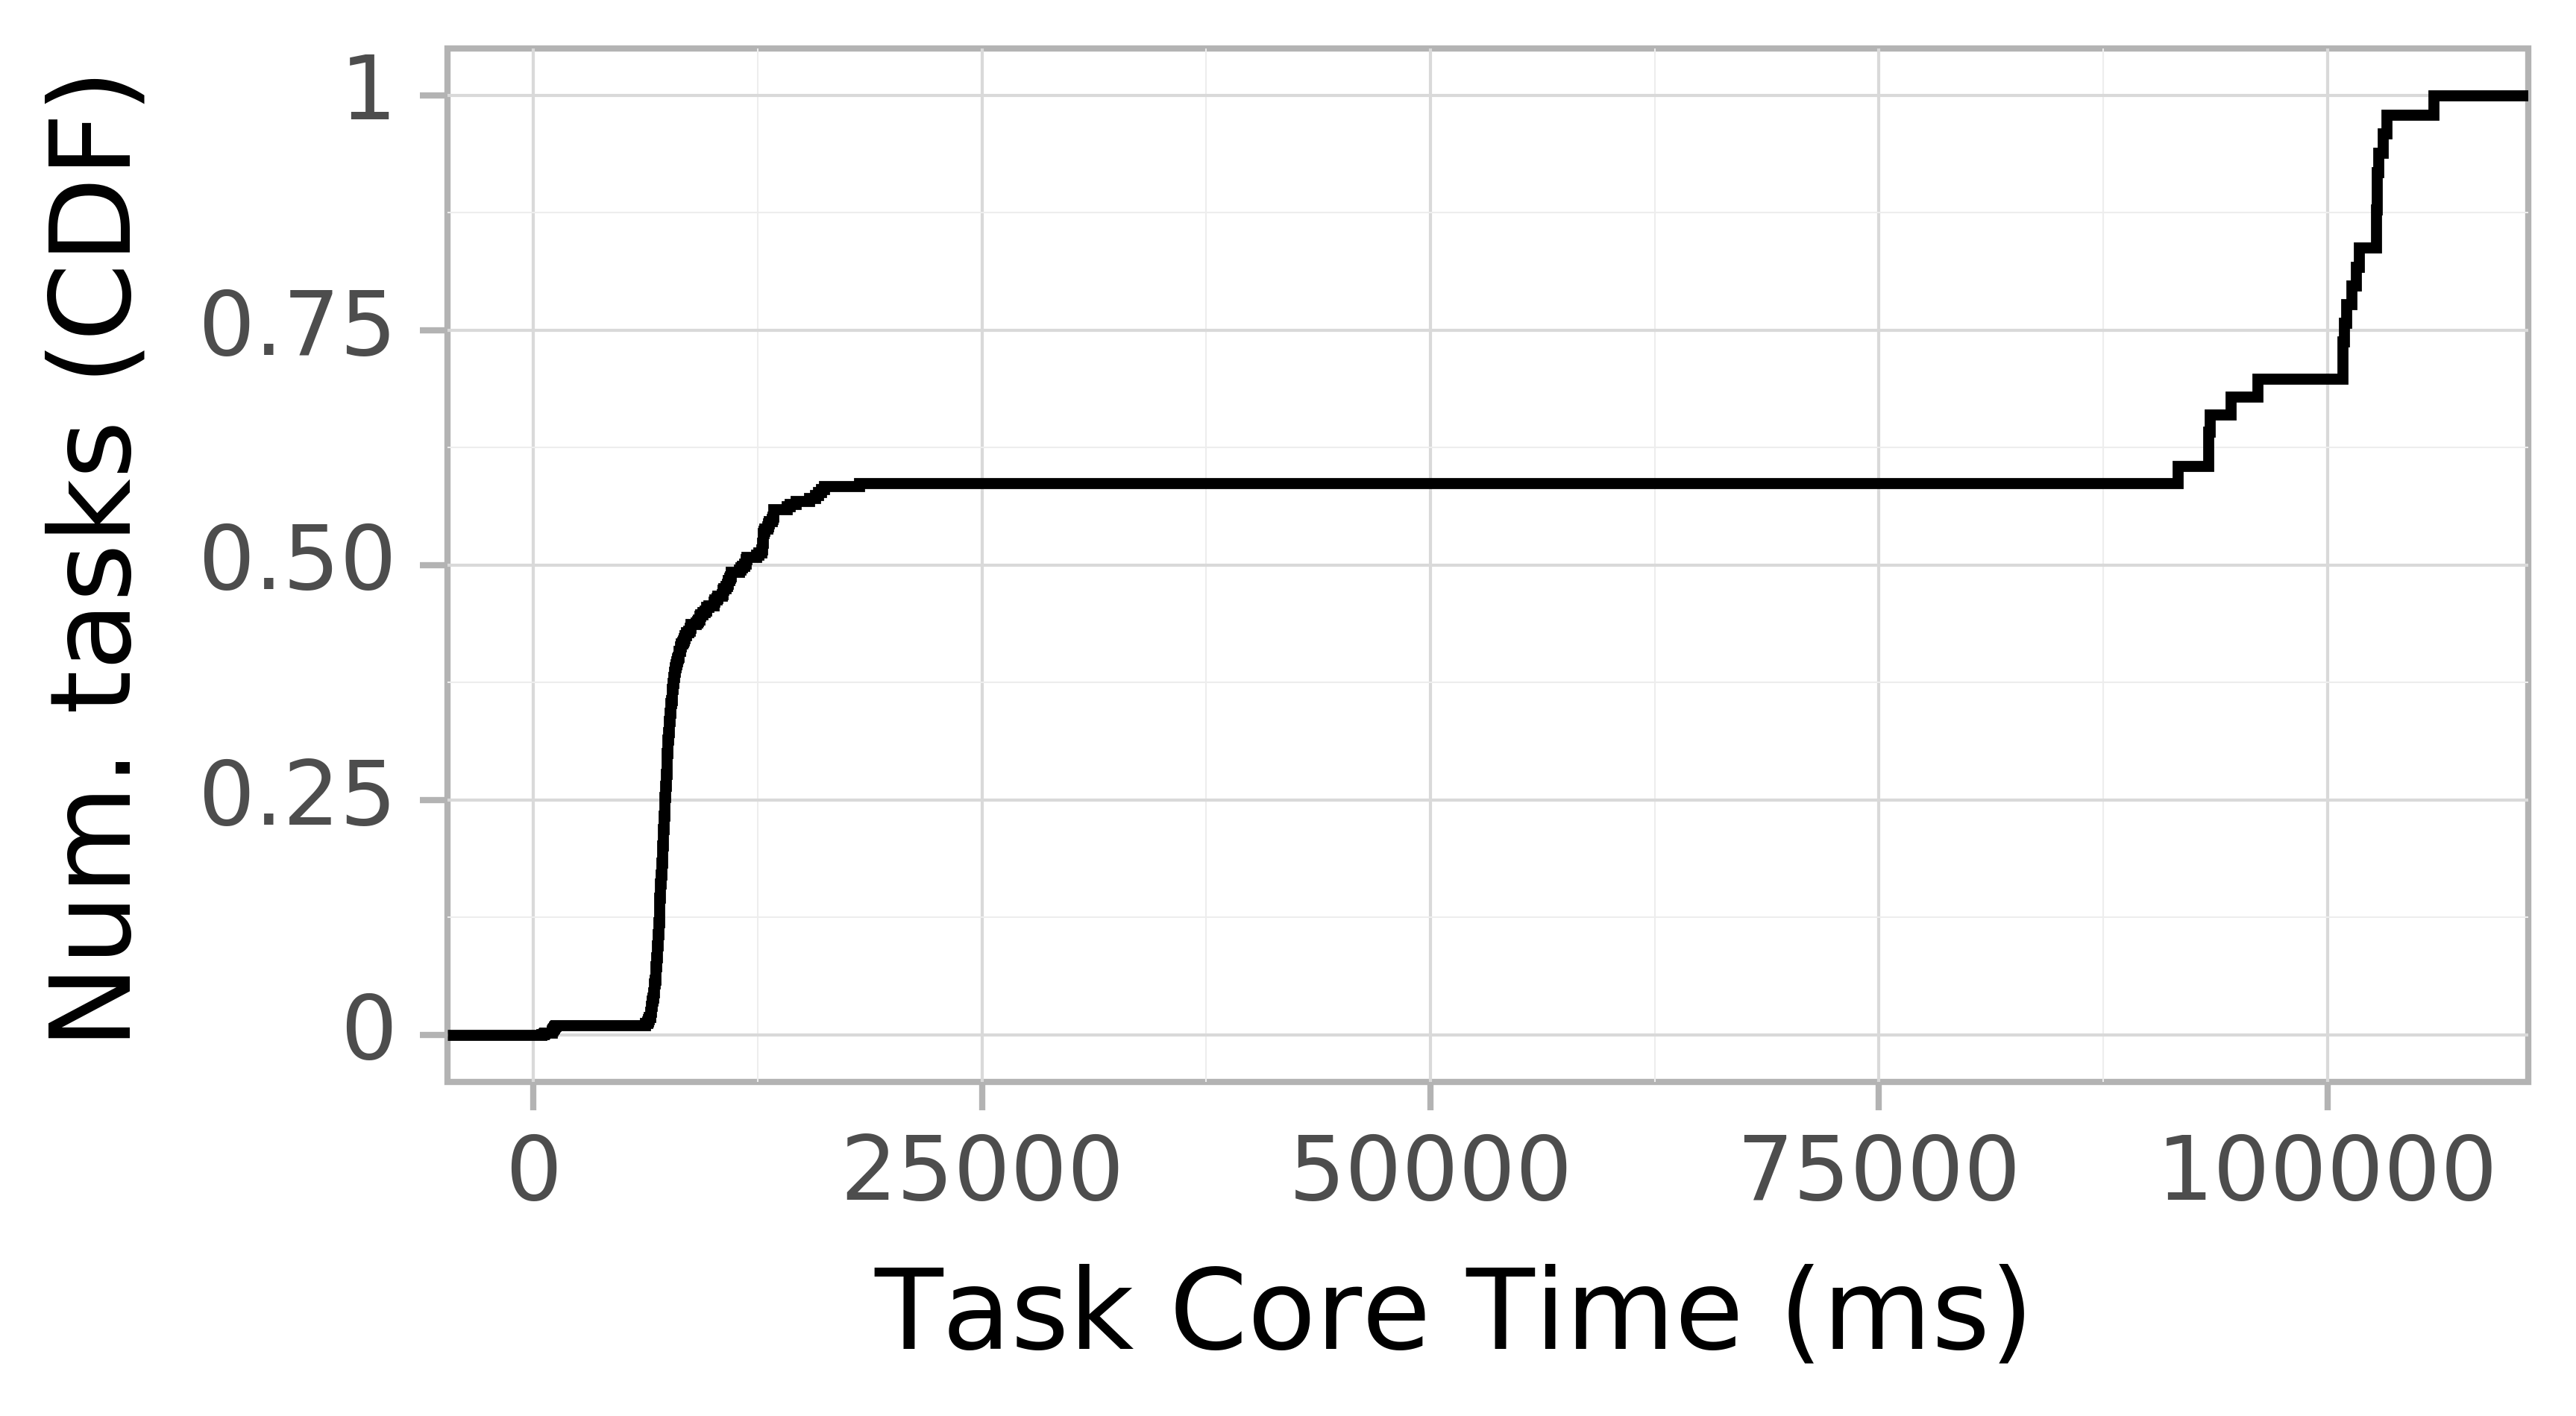 task resource time CDF graph for the askalon-new_ee36 trace.